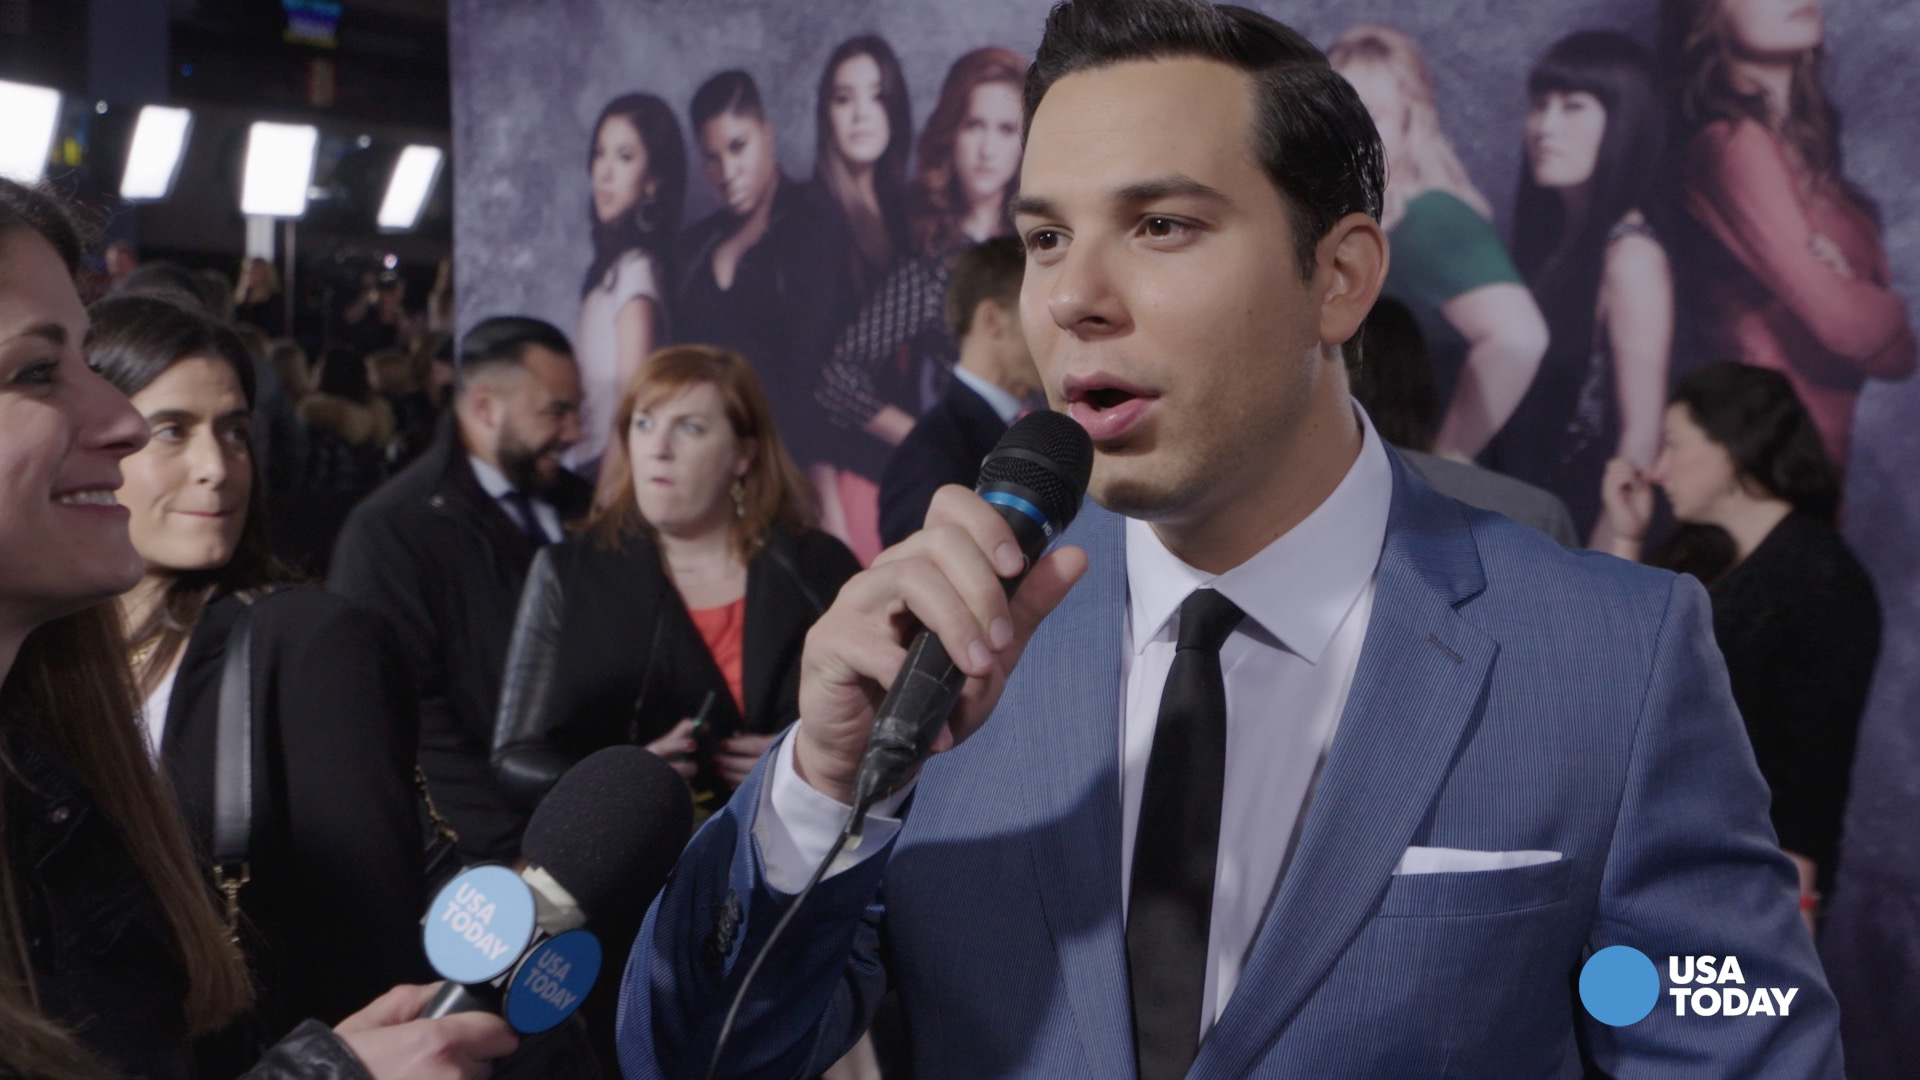 Pitch Perfect 2 premiere: The cast shows they can sing